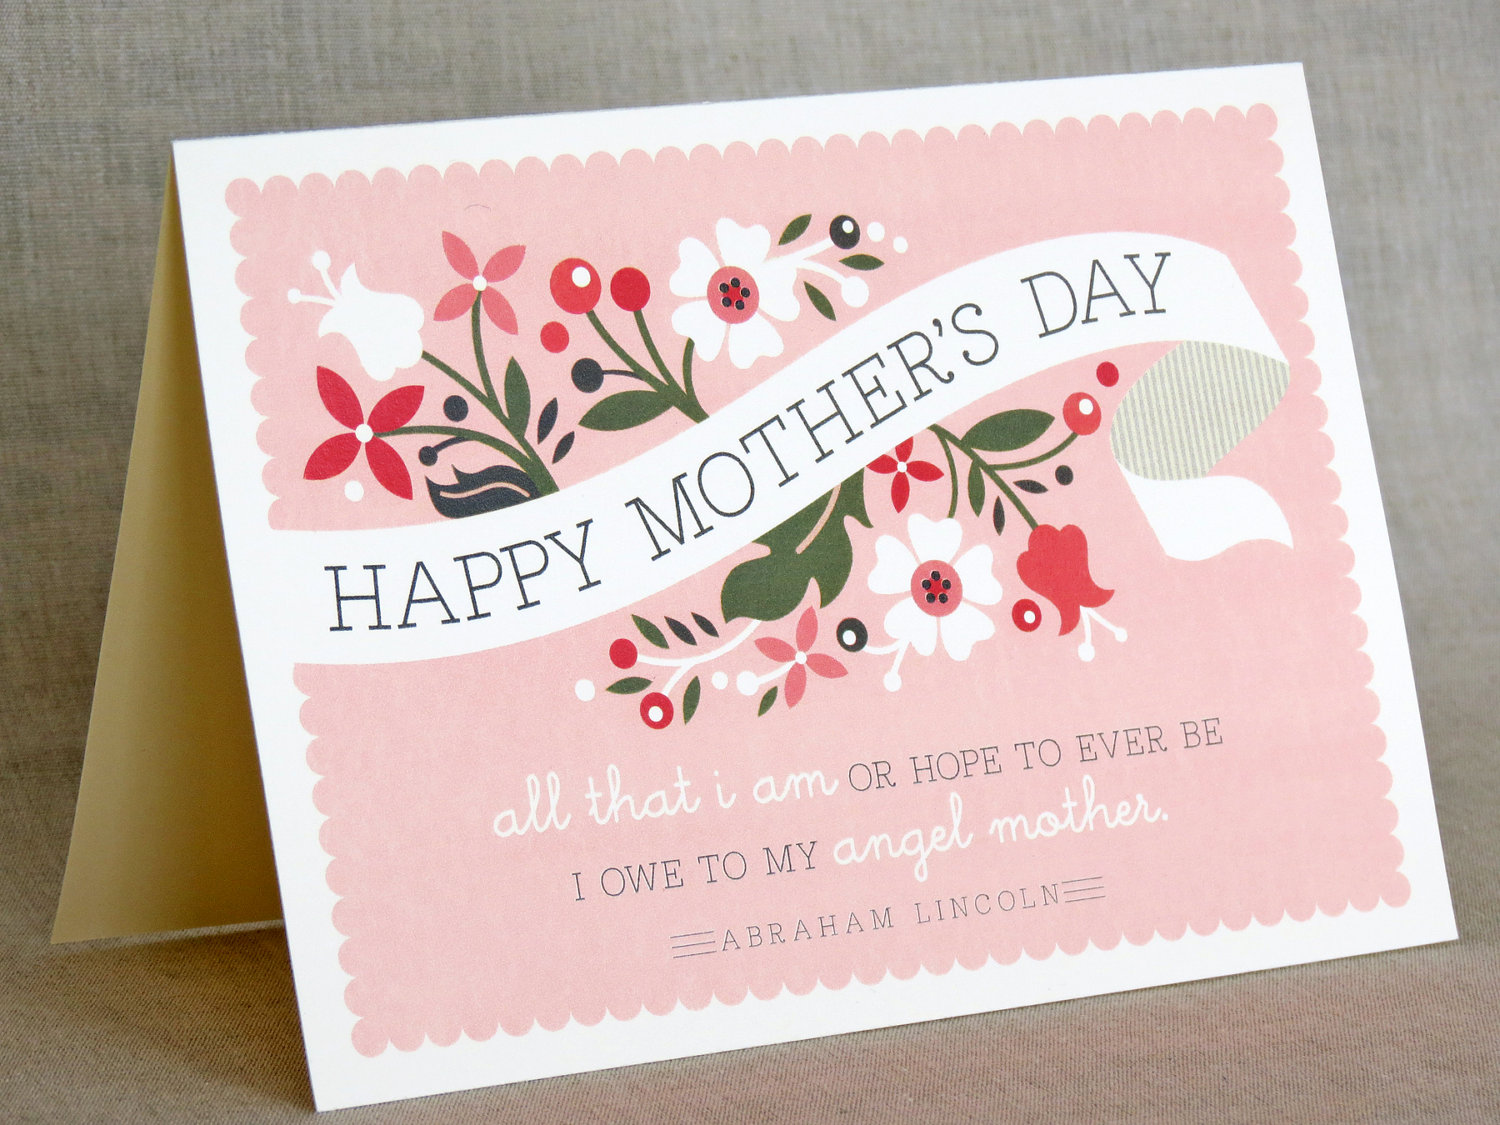 Designing a thoughtful and unique mother 39 s day card Good ideas for mothers day card